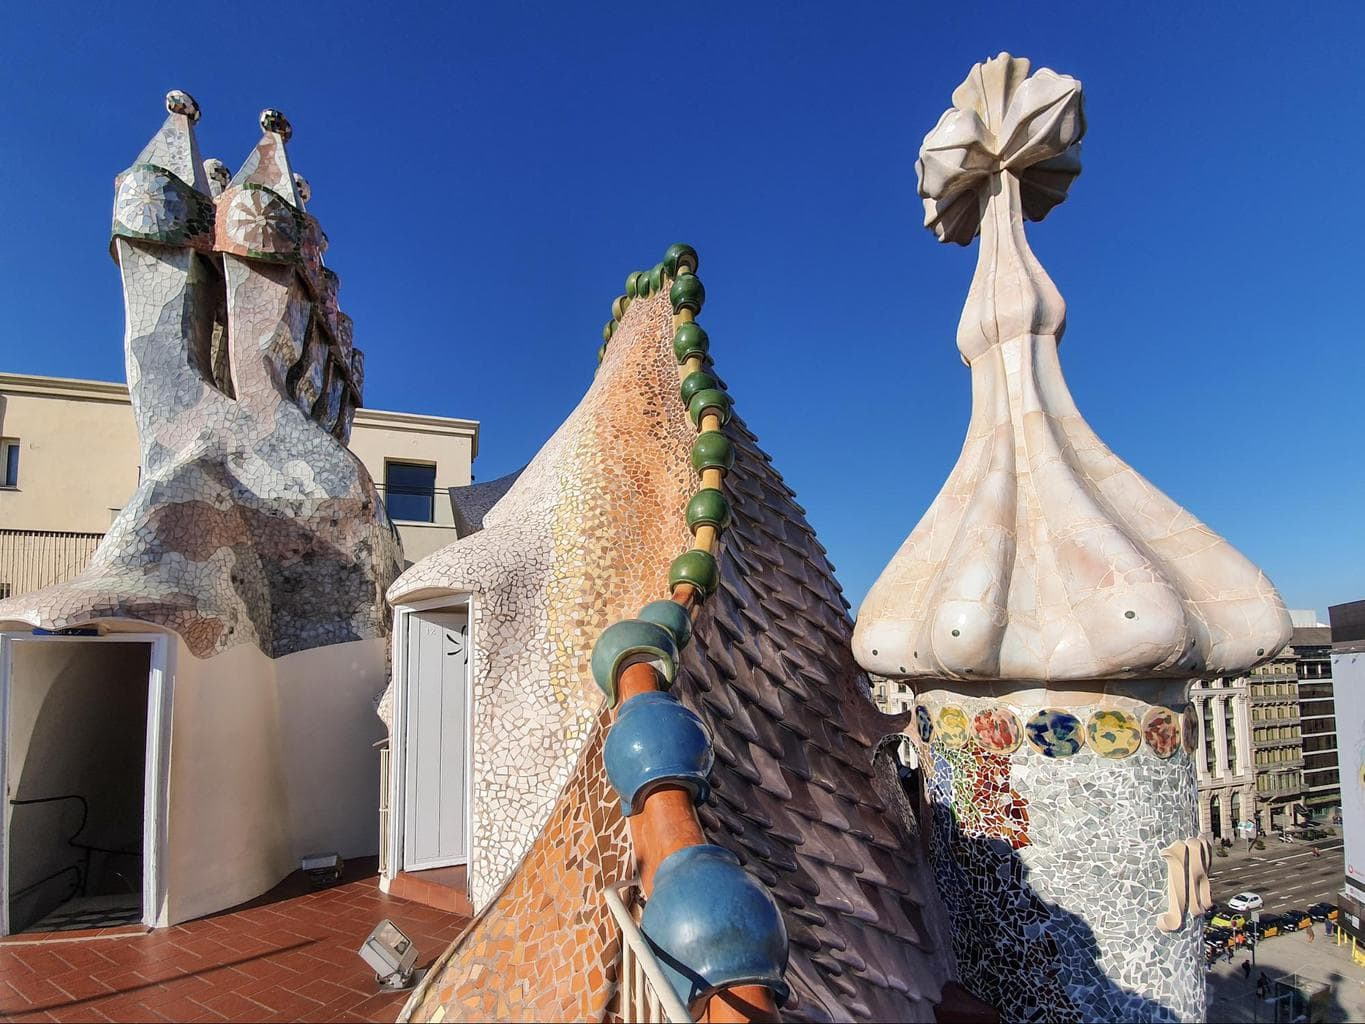 The rooftop of Casa Batllo